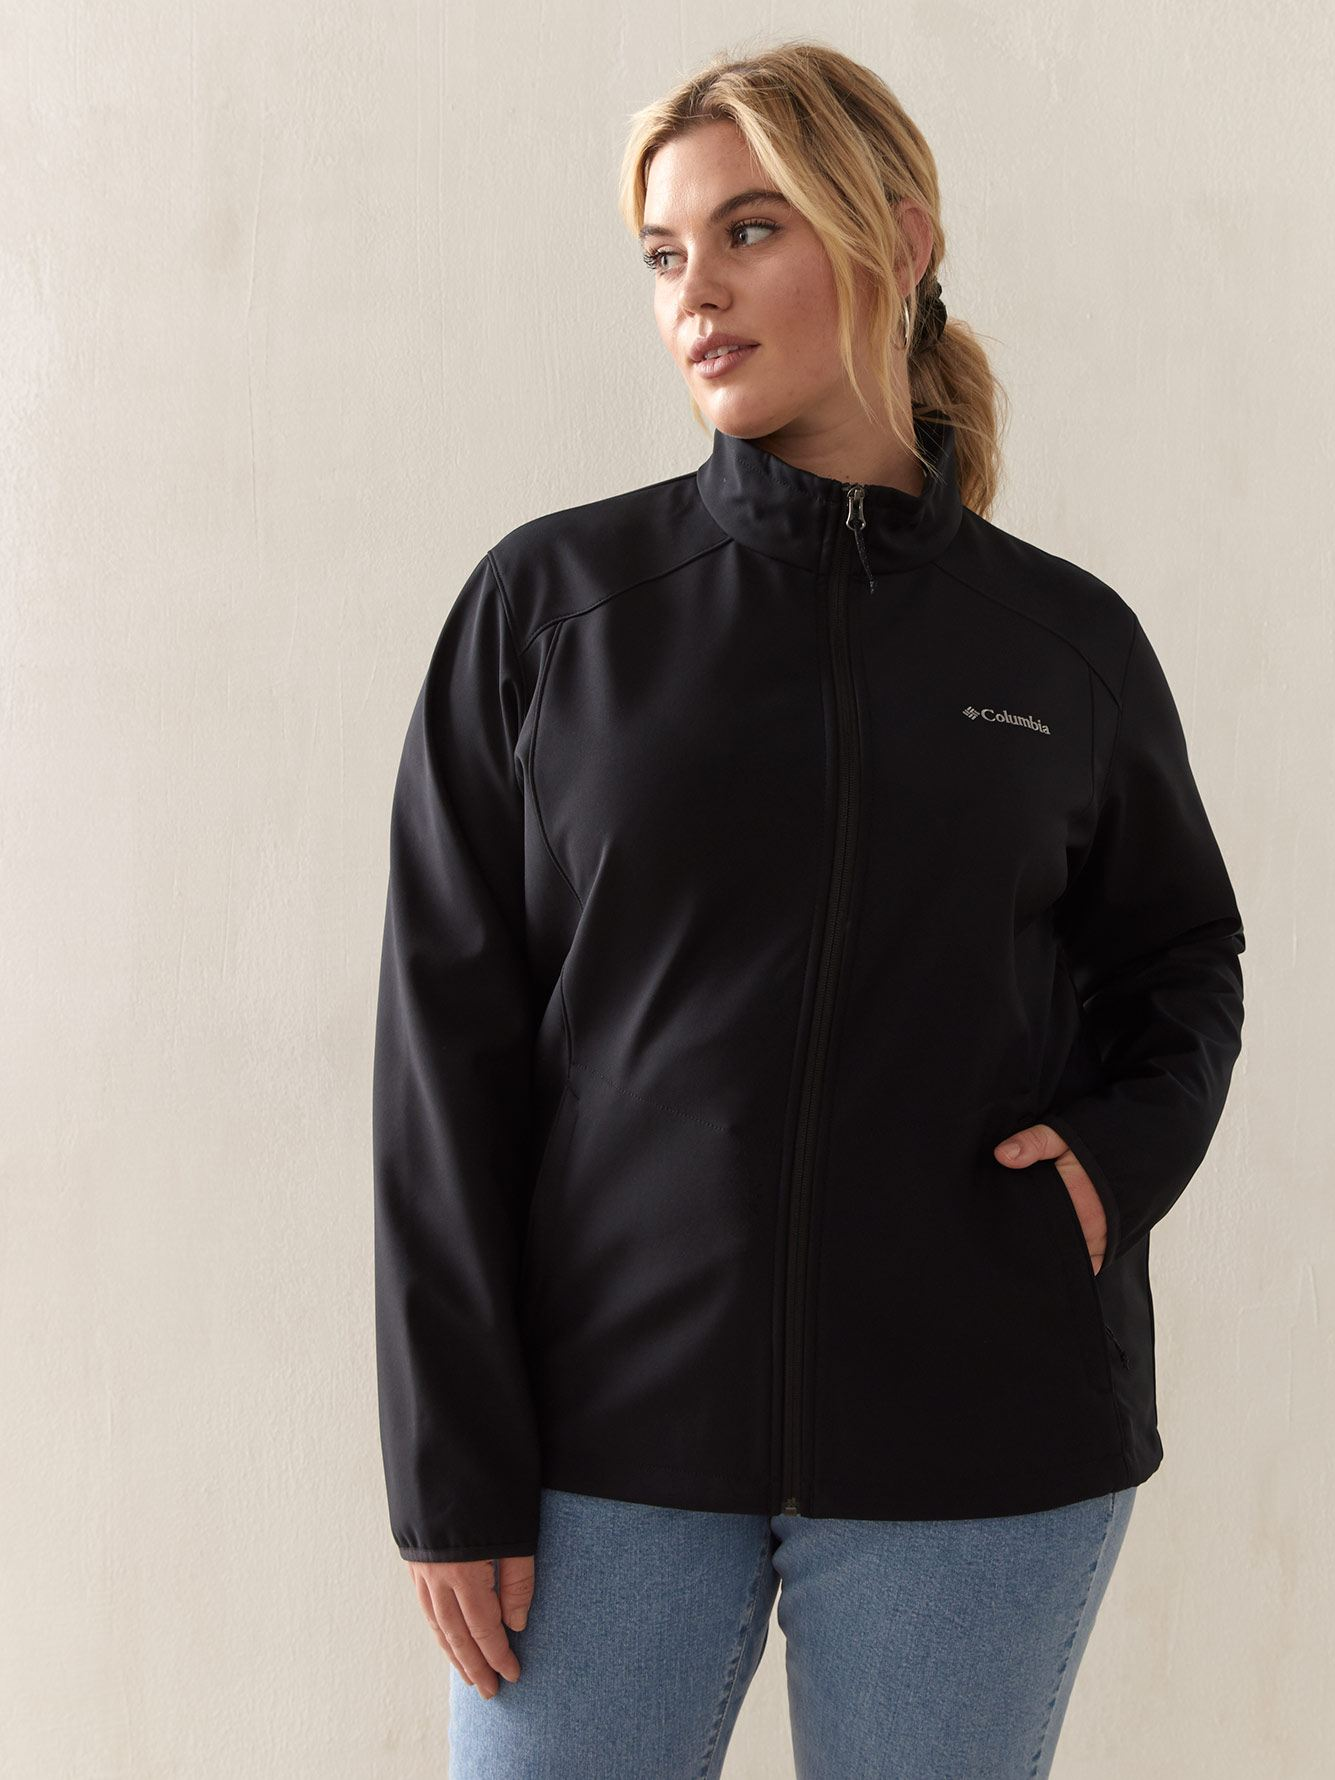 Soft Shell Kruser Ridge Jacket - Columbia